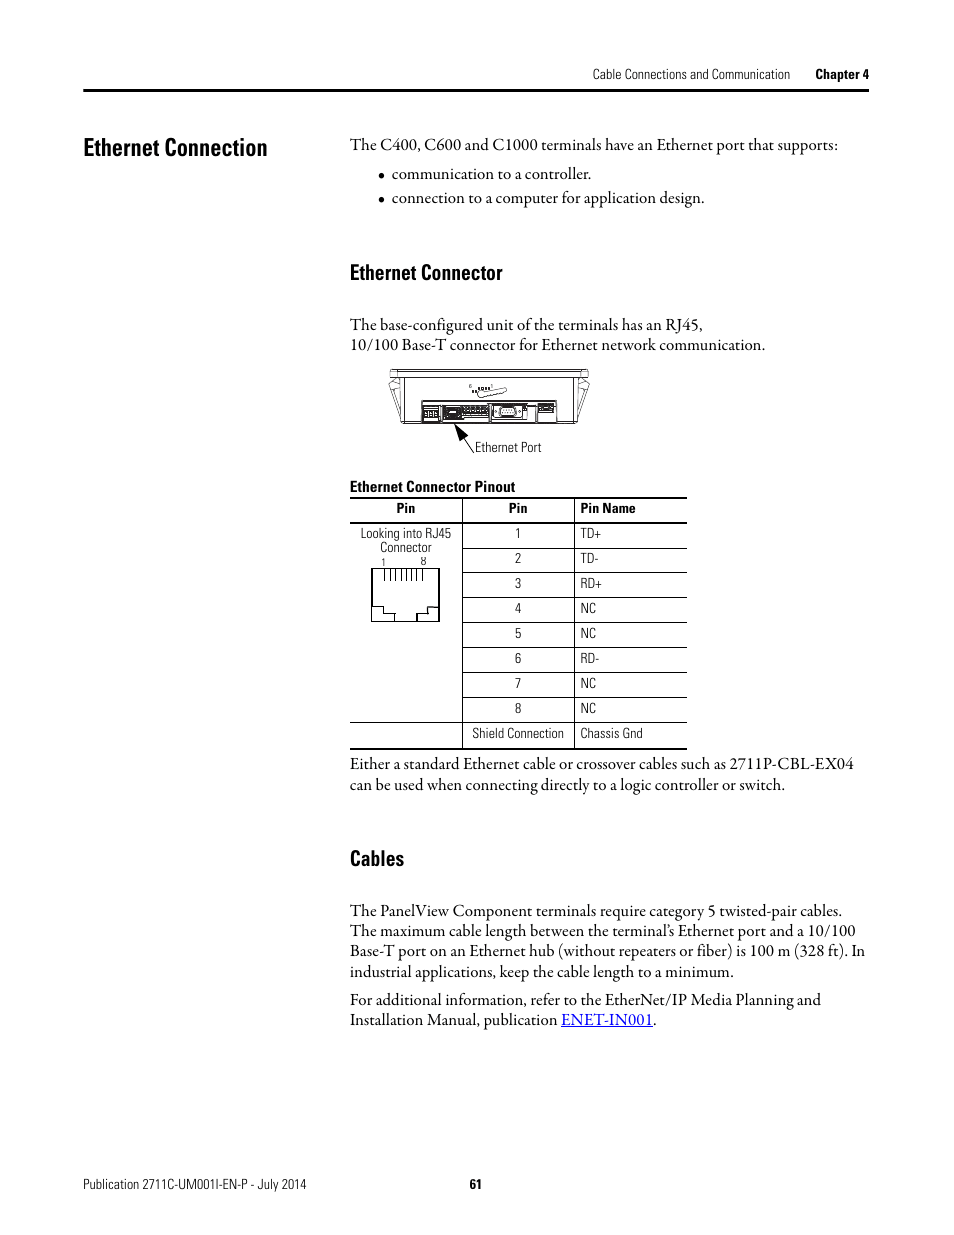 hight resolution of ethernet connection ethernet connector cables rockwell automation 2711c xxxx panelview component hmi terminals user manual page 61 146